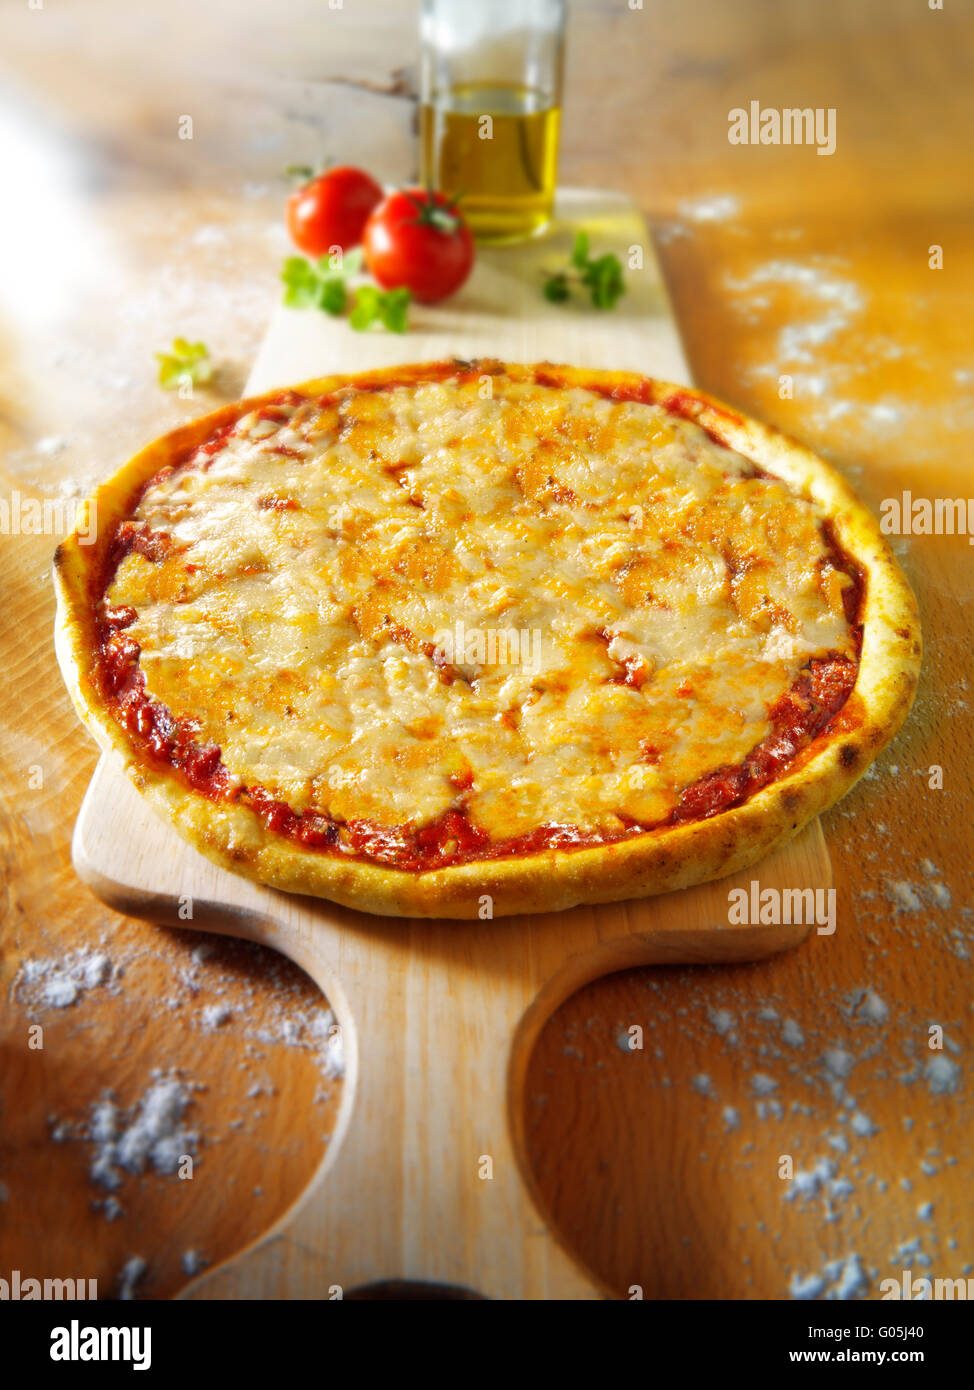 Cooked whole cheese and tomato Margherita pizza - Stock Image